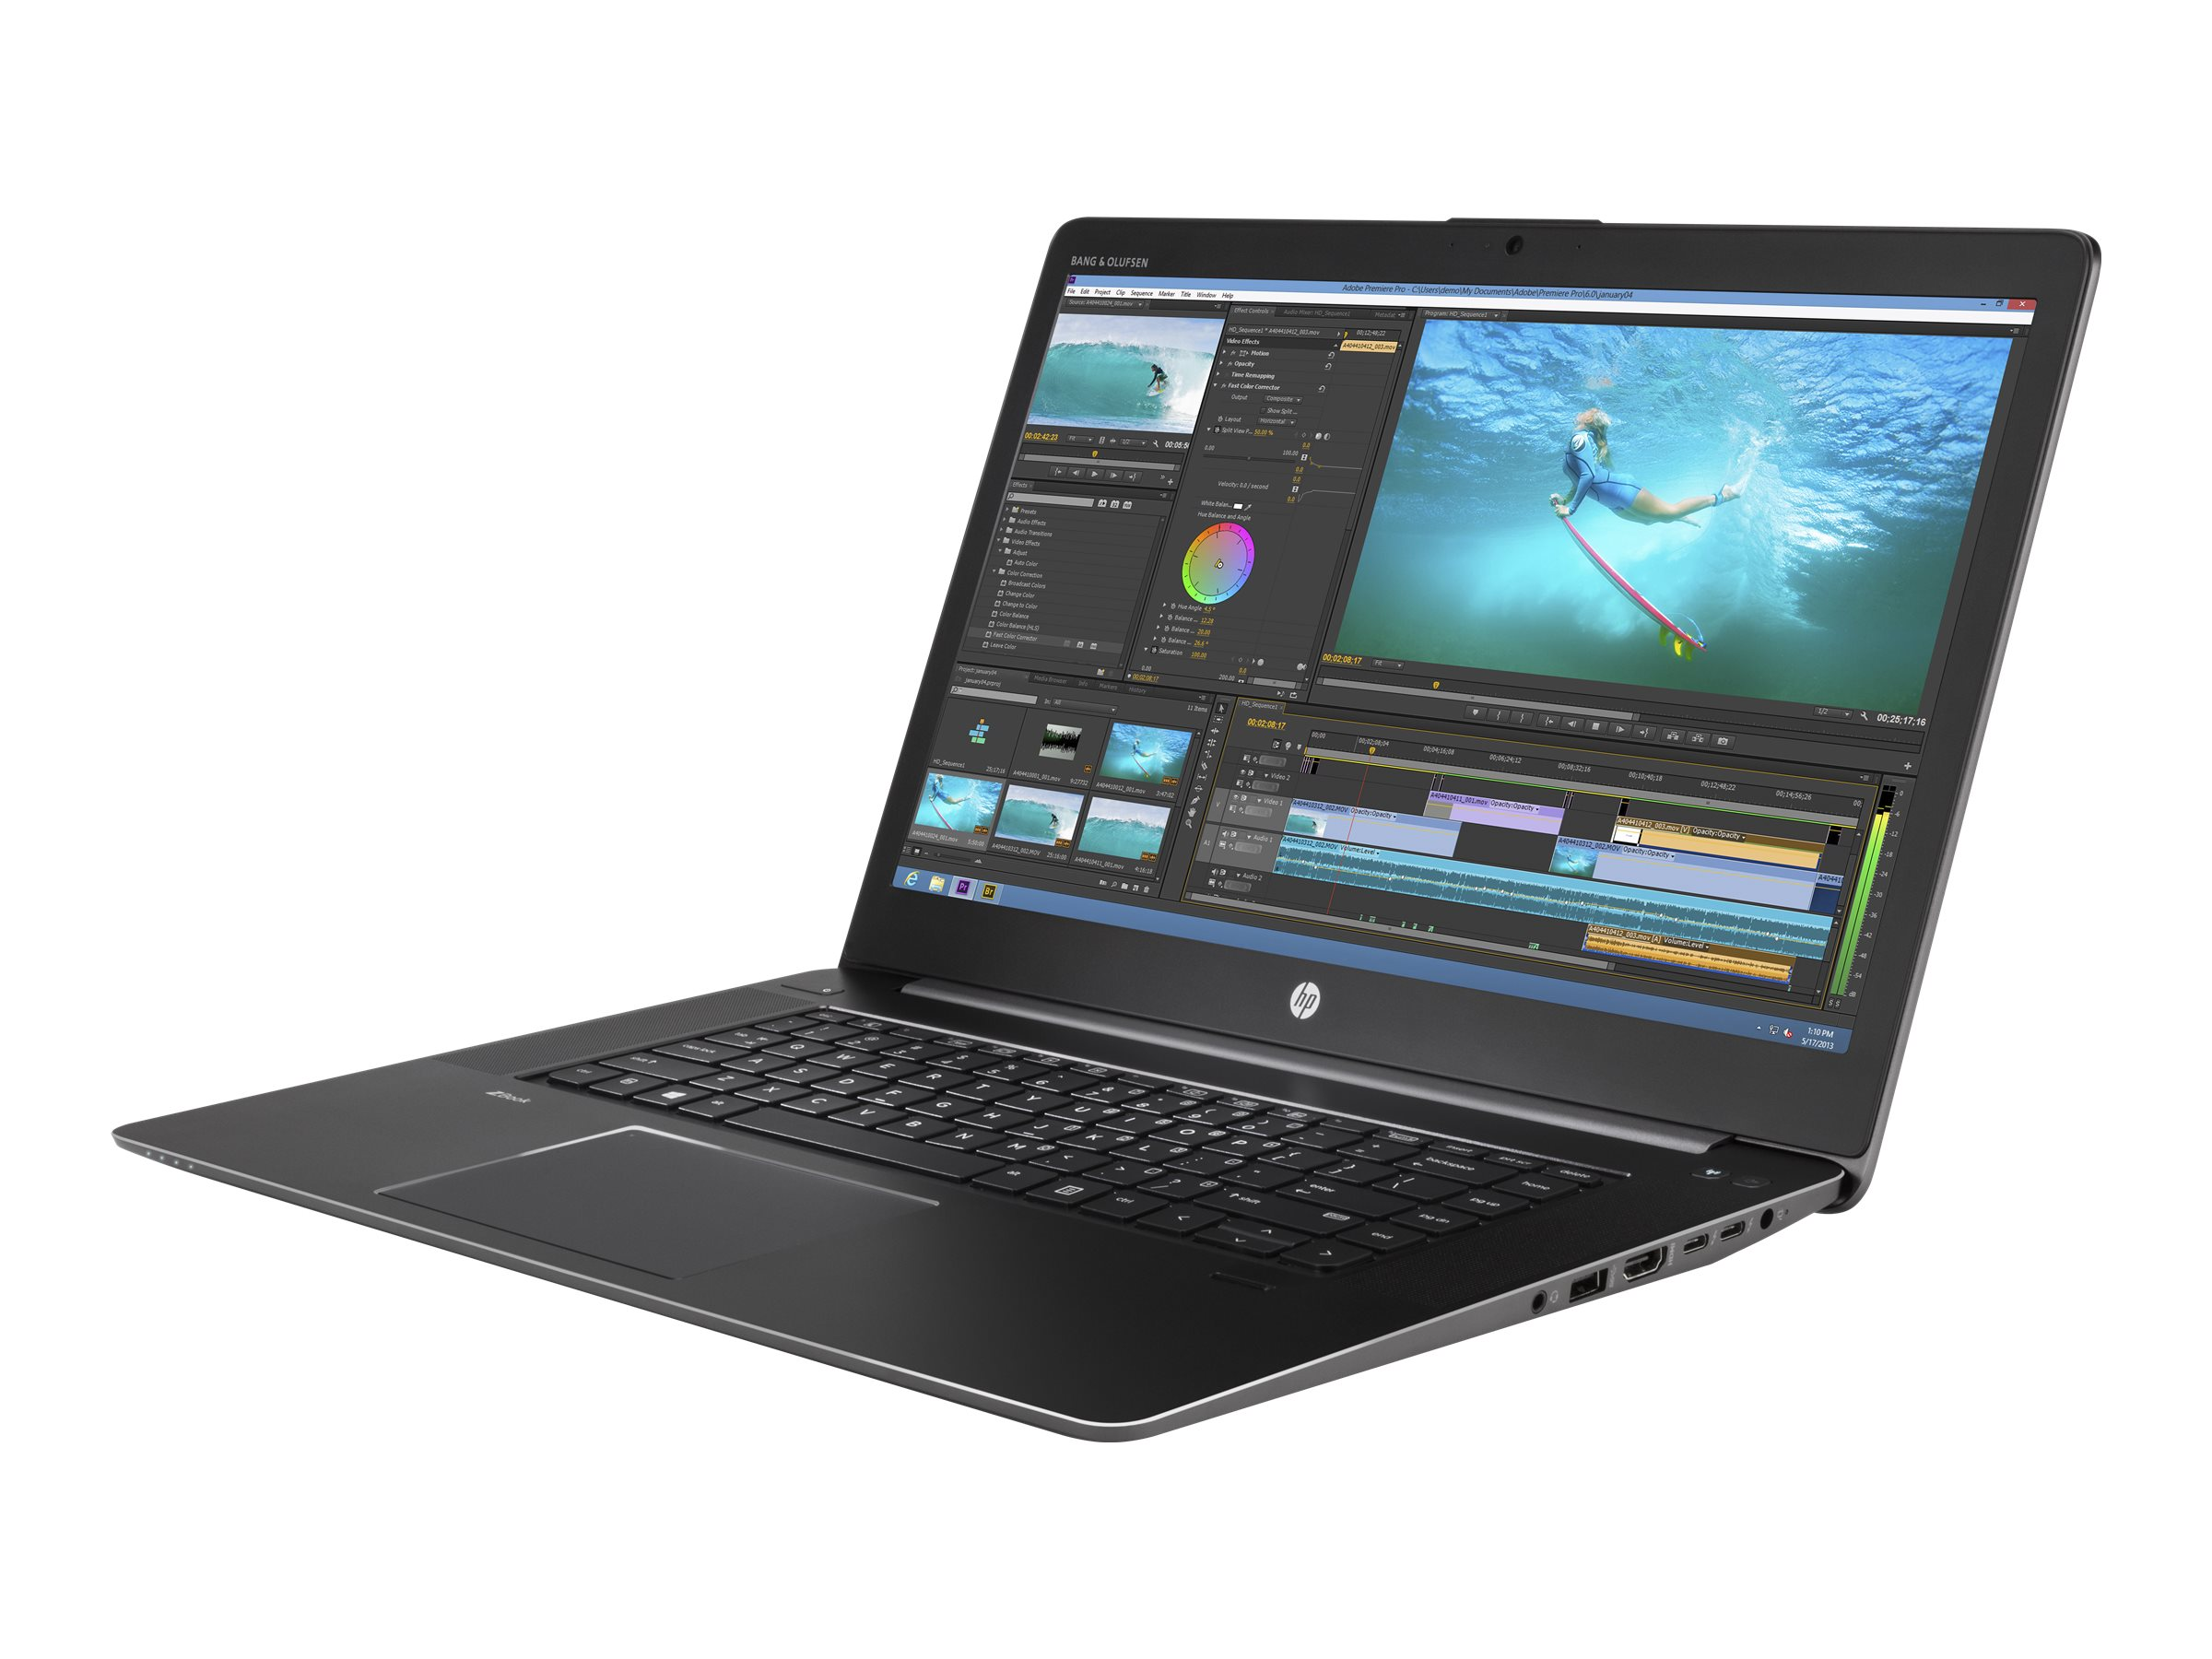 HP ZBook 15 G3 Core i7-6820HQ 2.7GHz 8GB 256GB ac BT FR WC 9C M1000M 15.6 FHD W7P64-W10P, V2W09UT#ABA, 31391366, Workstations - Mobile